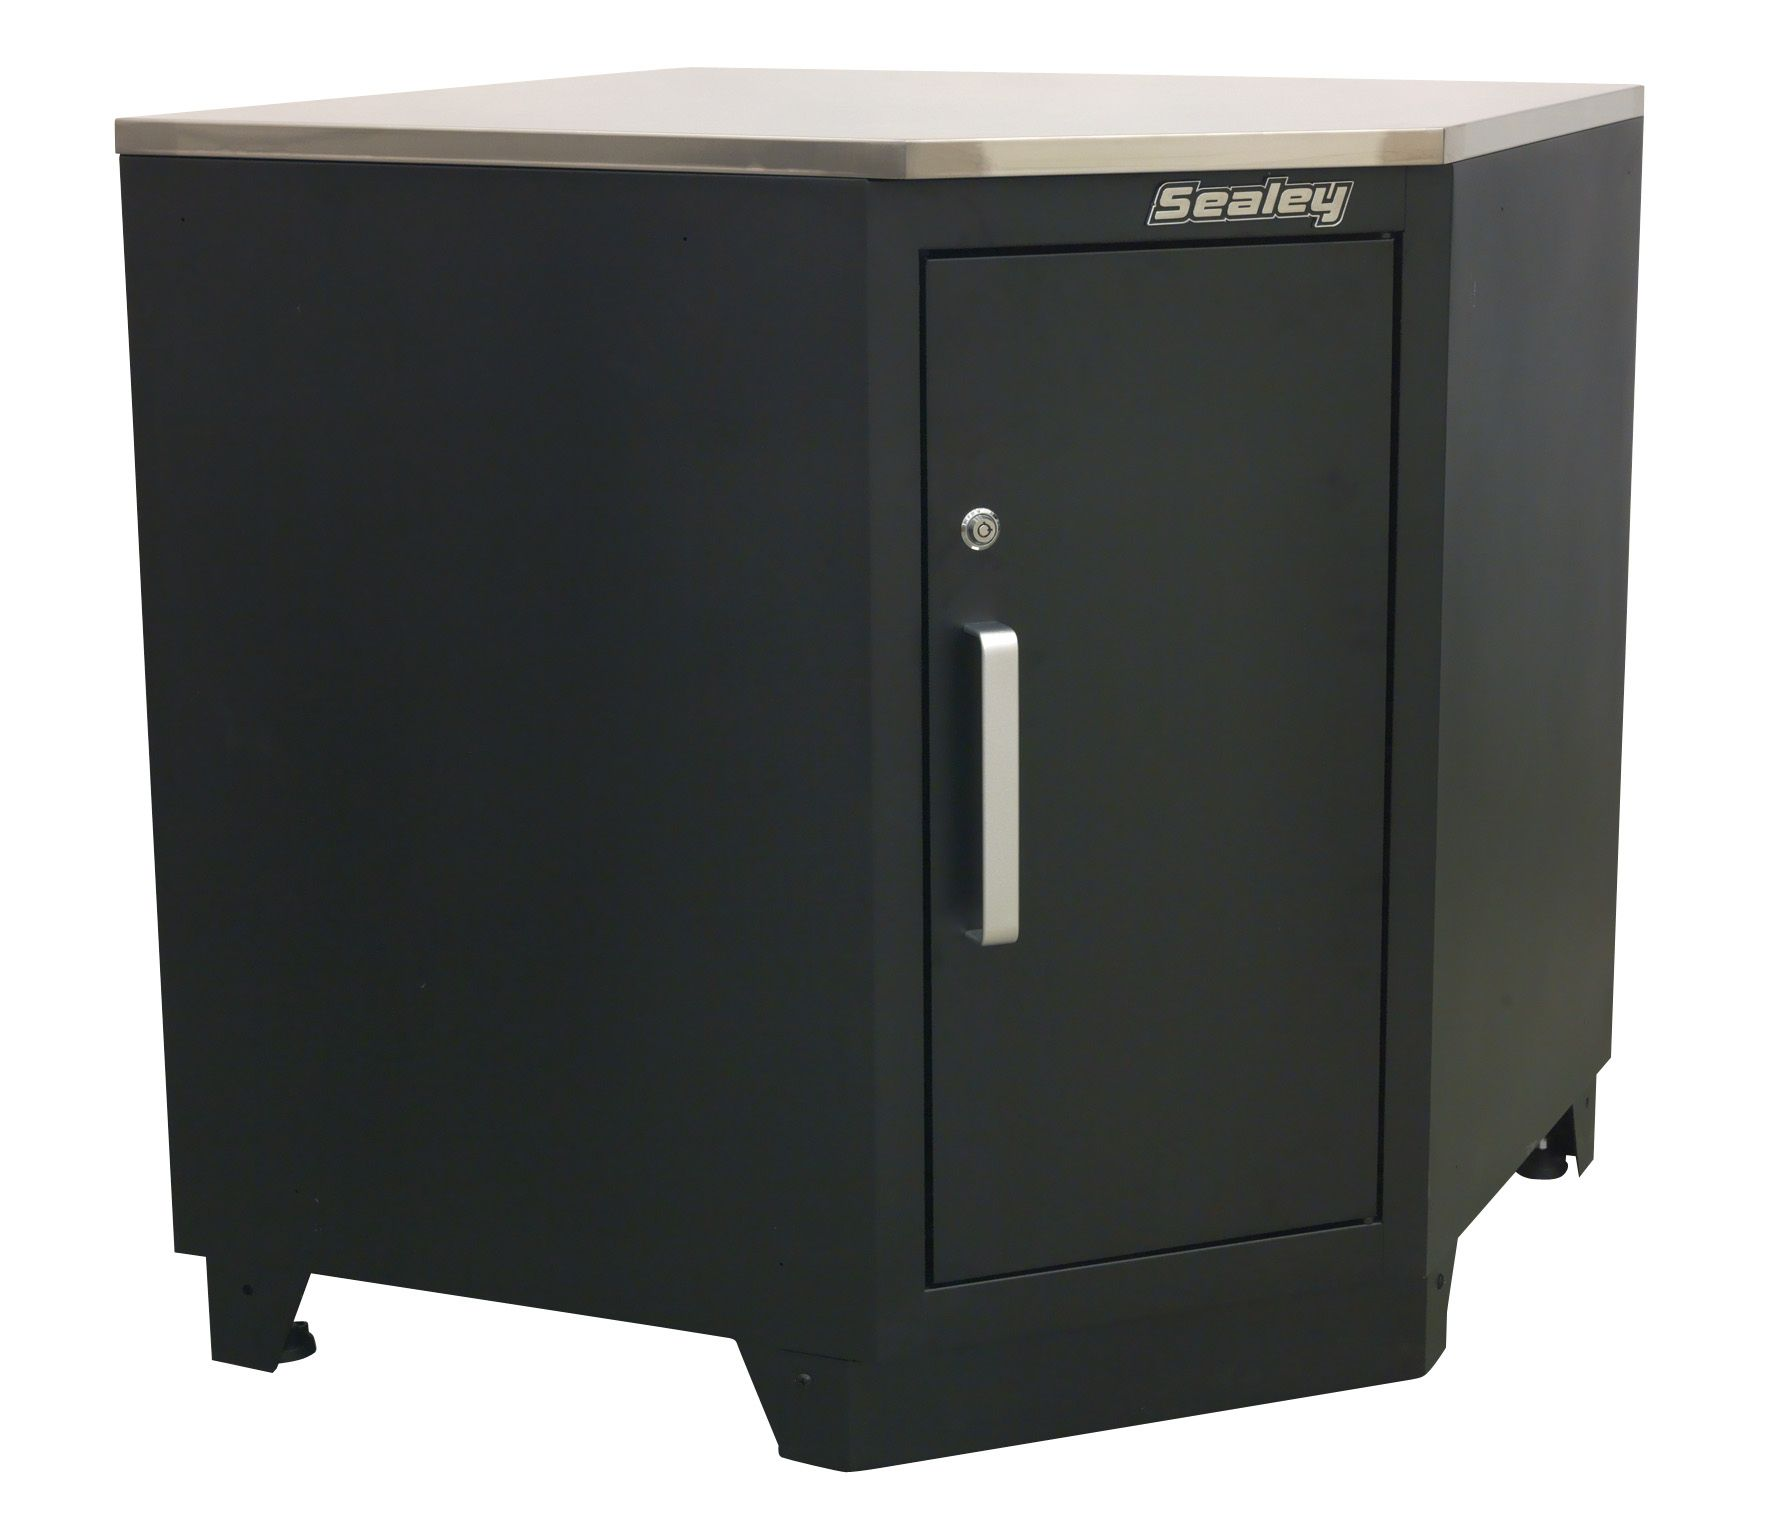 Sealey Premier Modular Corner Floor Cabinet 930mm Heavy-Duty